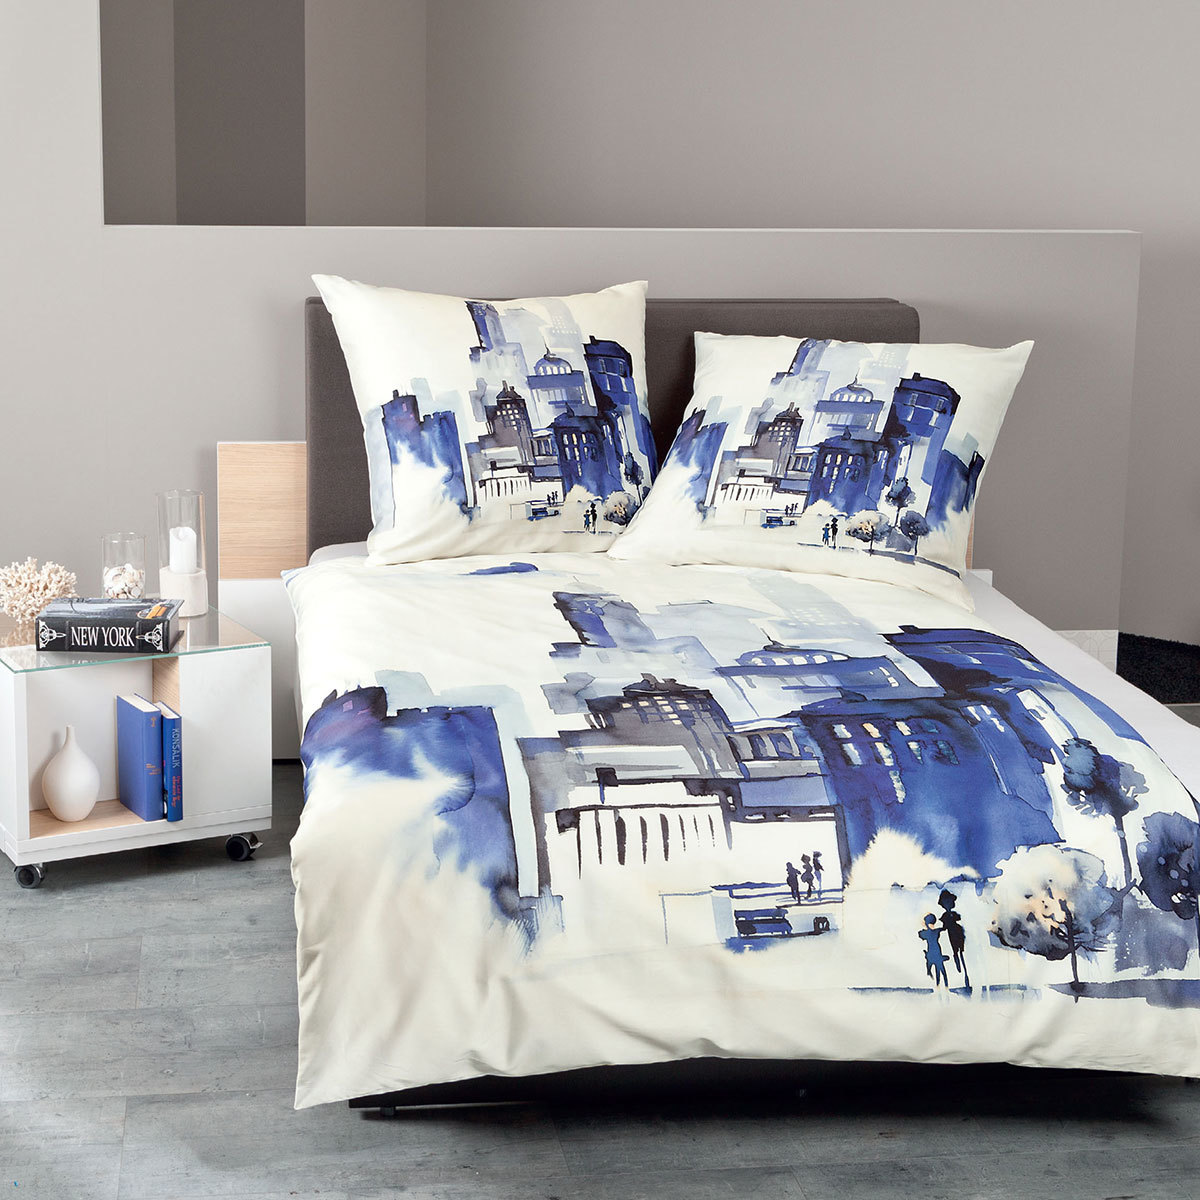 janine mako satin bettw sche modern art 42025 02 blau g nstig online kaufen bei bettwaren shop. Black Bedroom Furniture Sets. Home Design Ideas